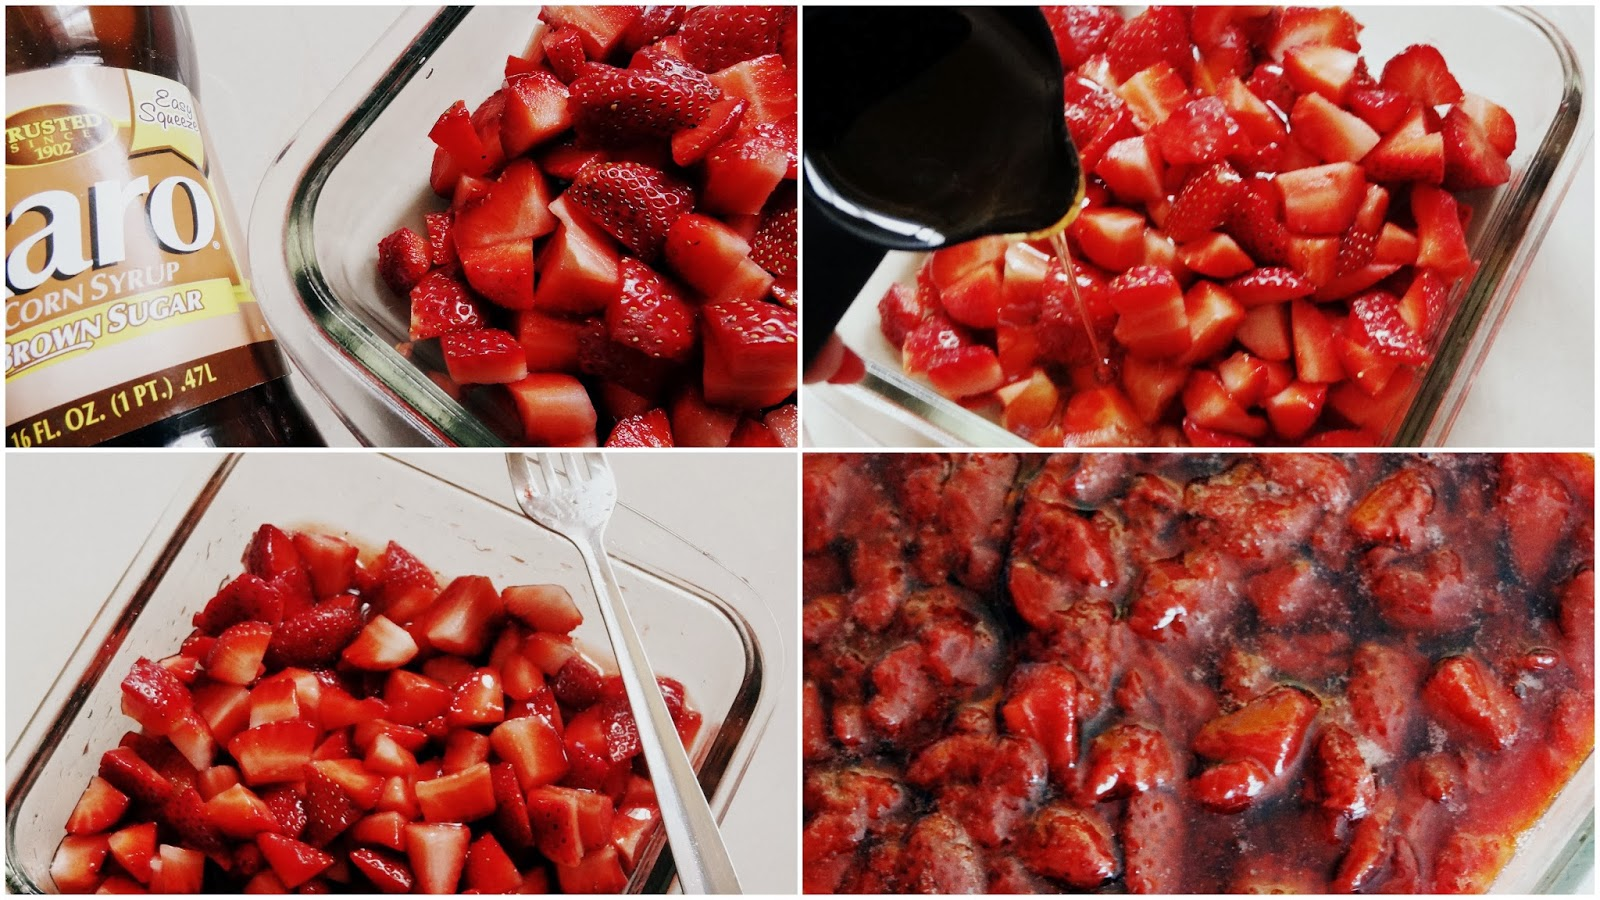 for this smoothies i roasted the strawberries as roasting brings